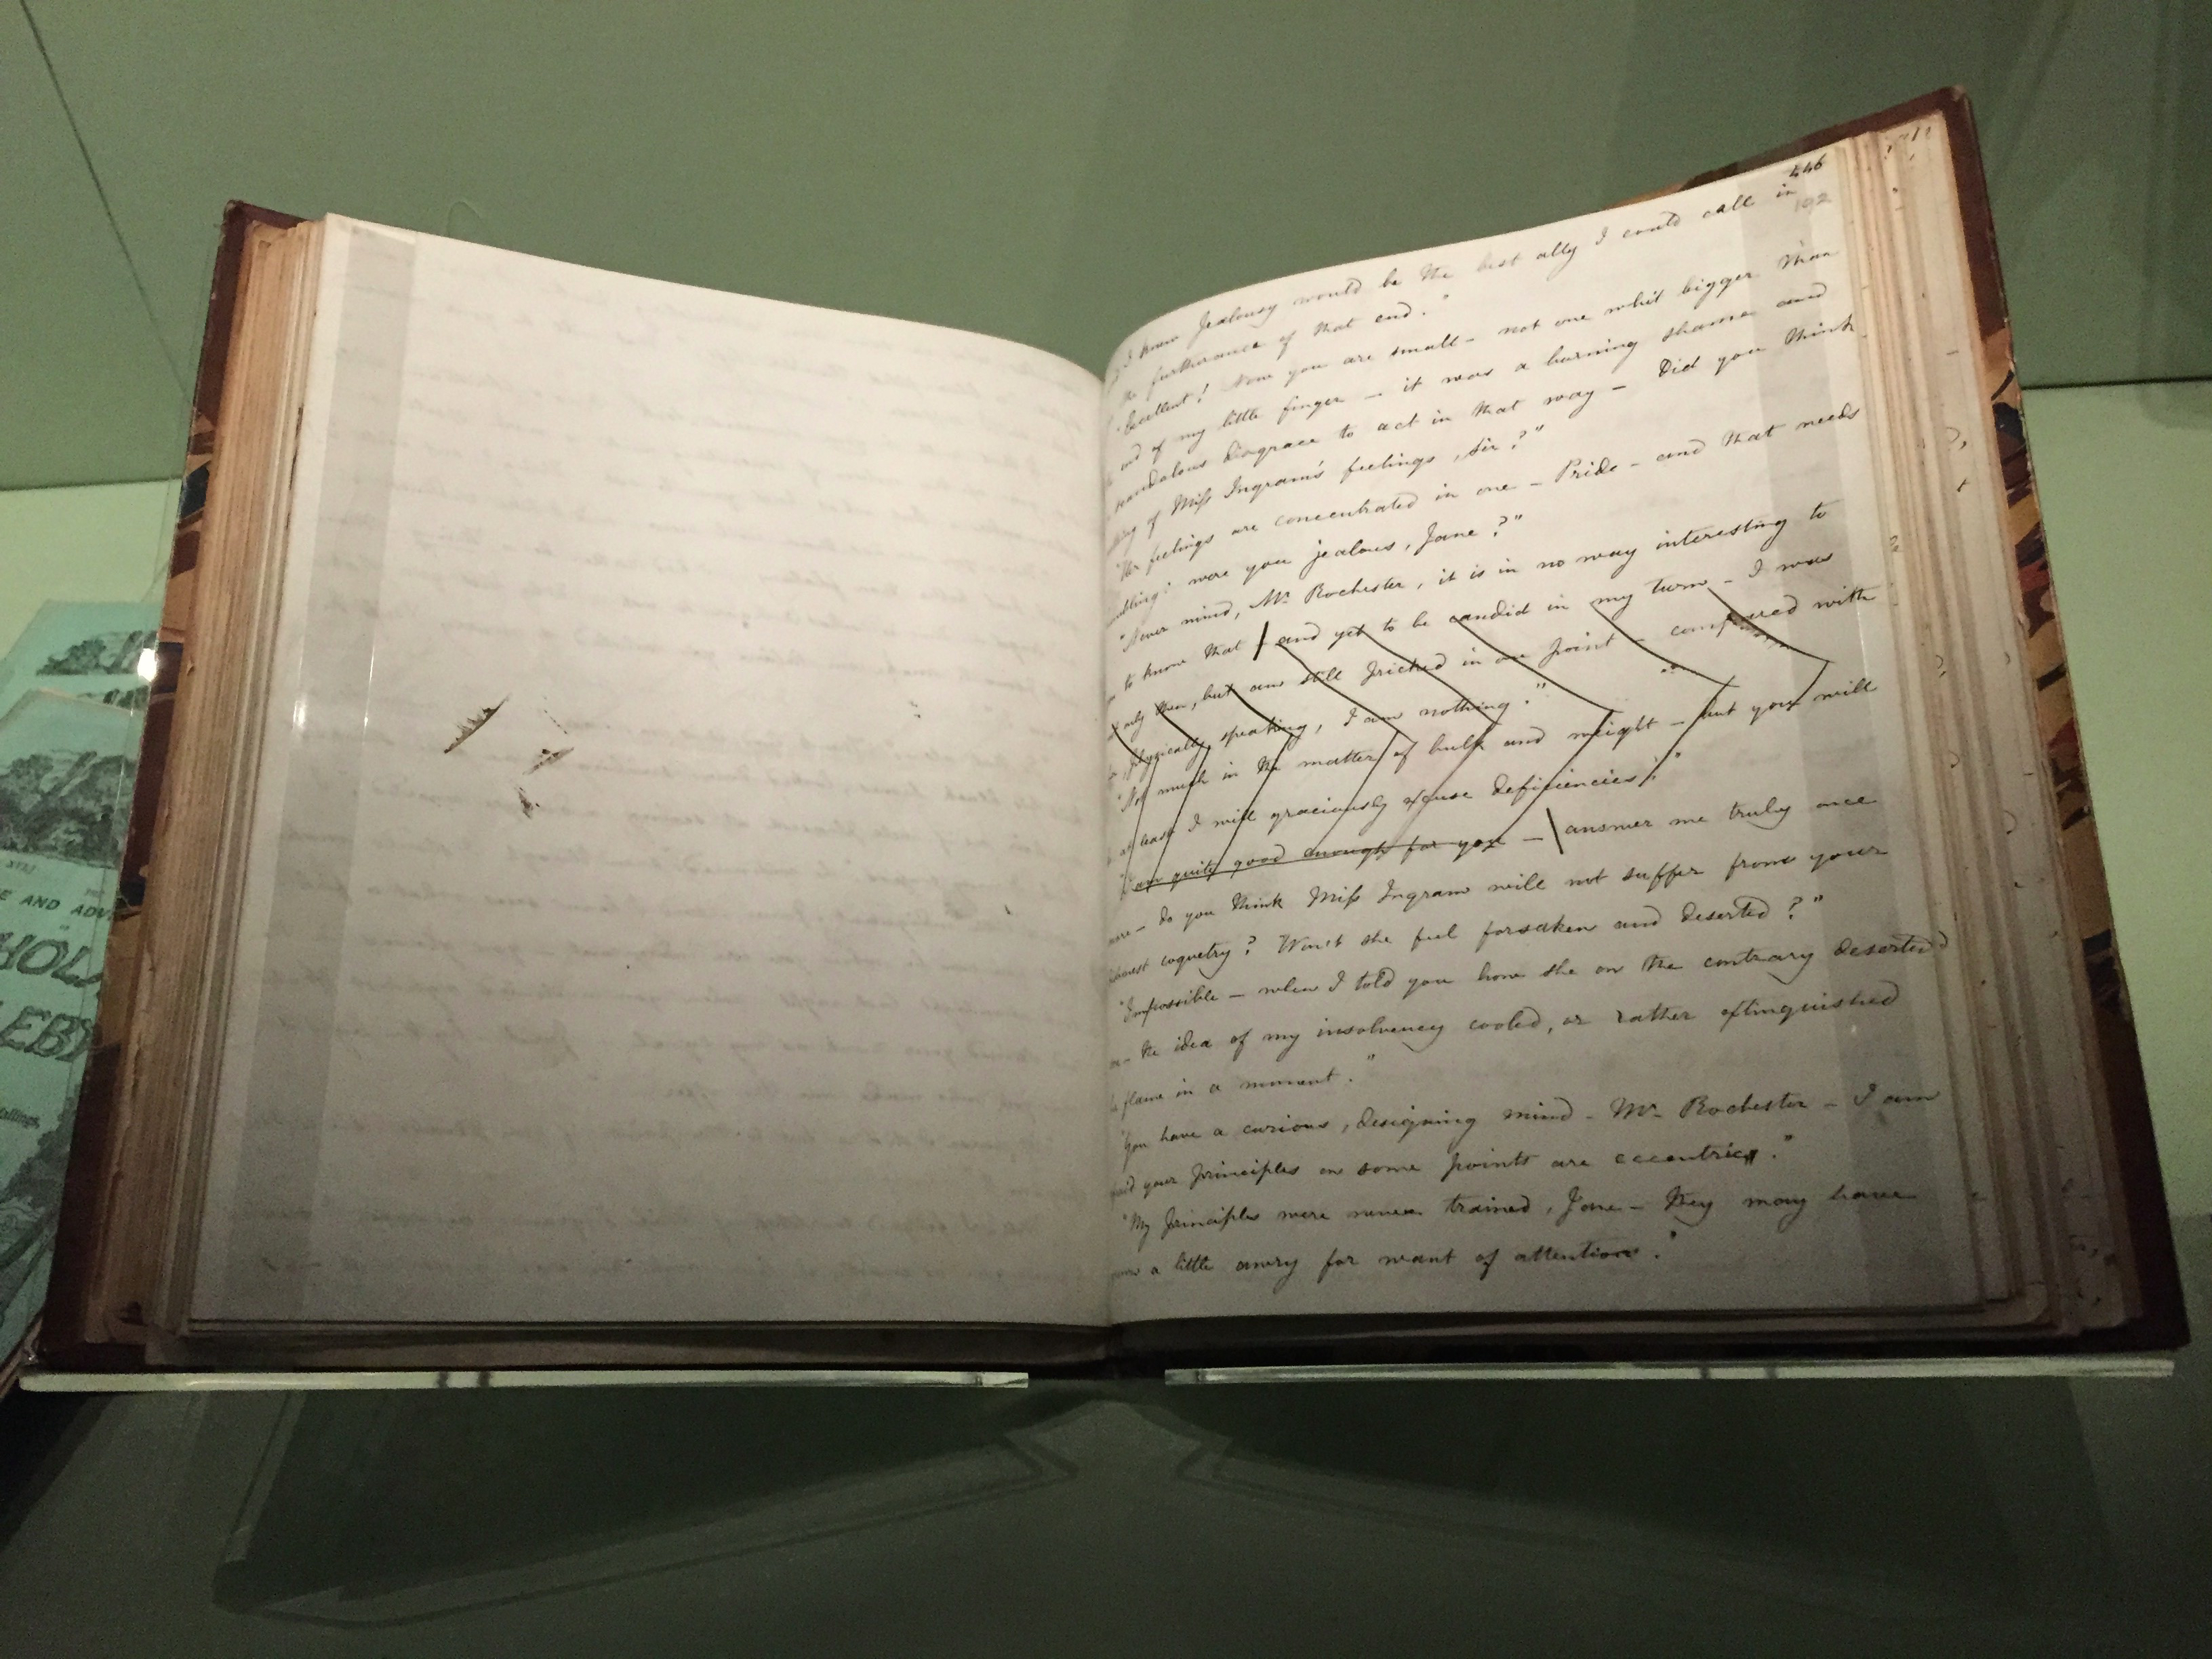 Manuscript - Jane Eyre (1847) by Charlotte Bronte